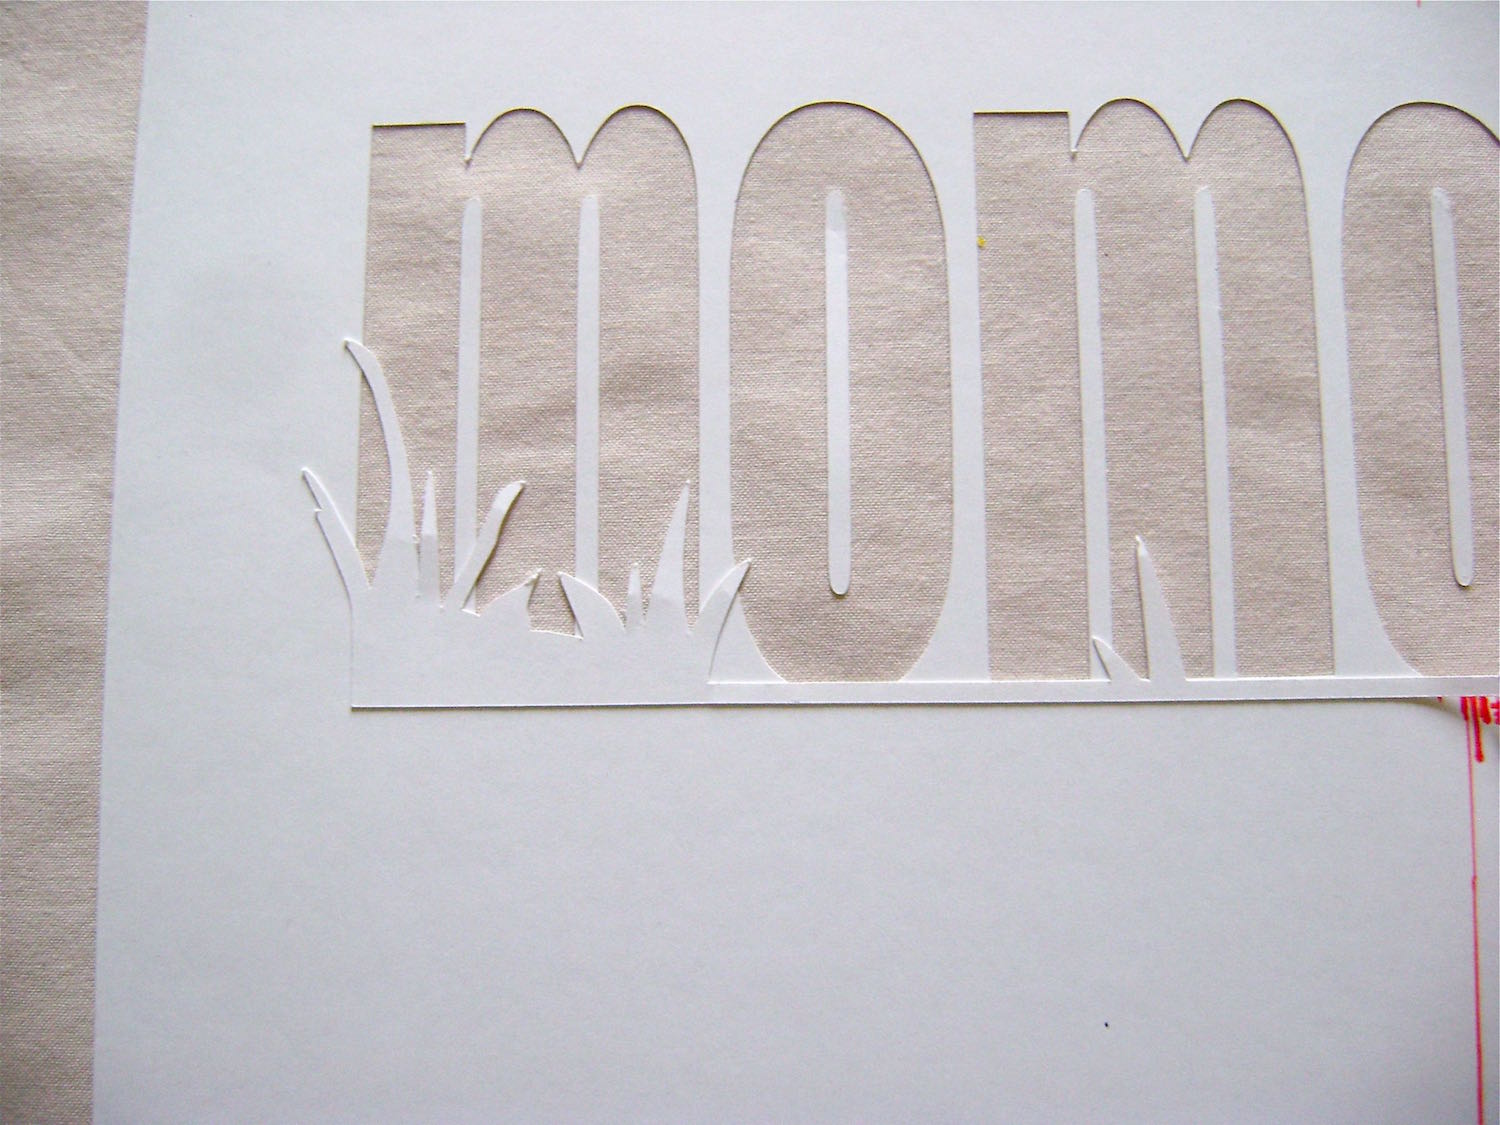 step 5 - Apply Spray Mount adhesive on the back of the die cut grass piece. Center, align, and press the piece onto the Mom stencil. The bottom edge of the grass piece should be flush against the bottom of the Mom lettering.